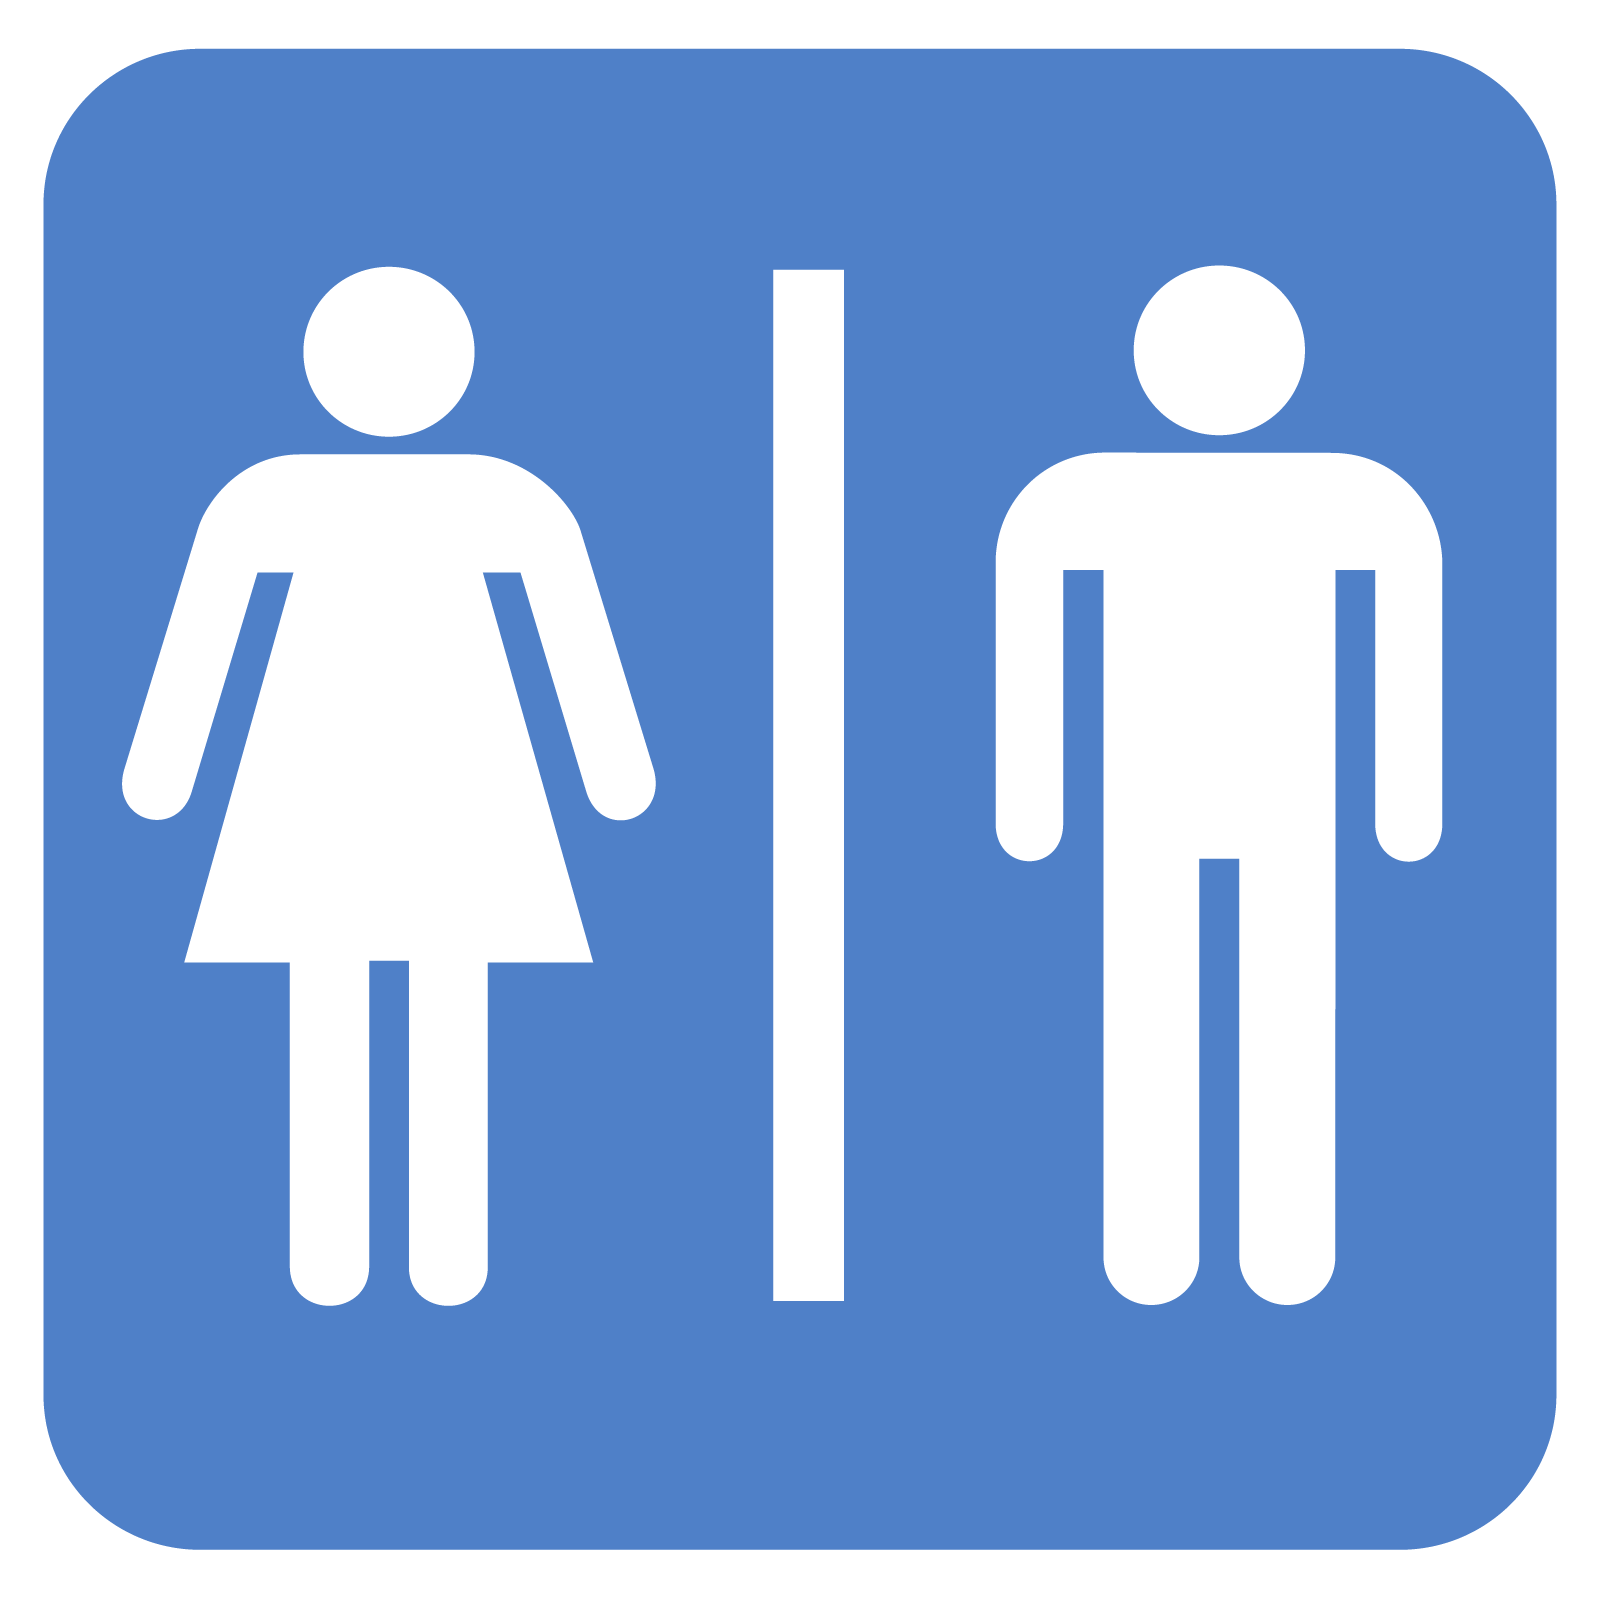 FileBathroomgendersignpng Wikimedia Commons - Male bathroom sign